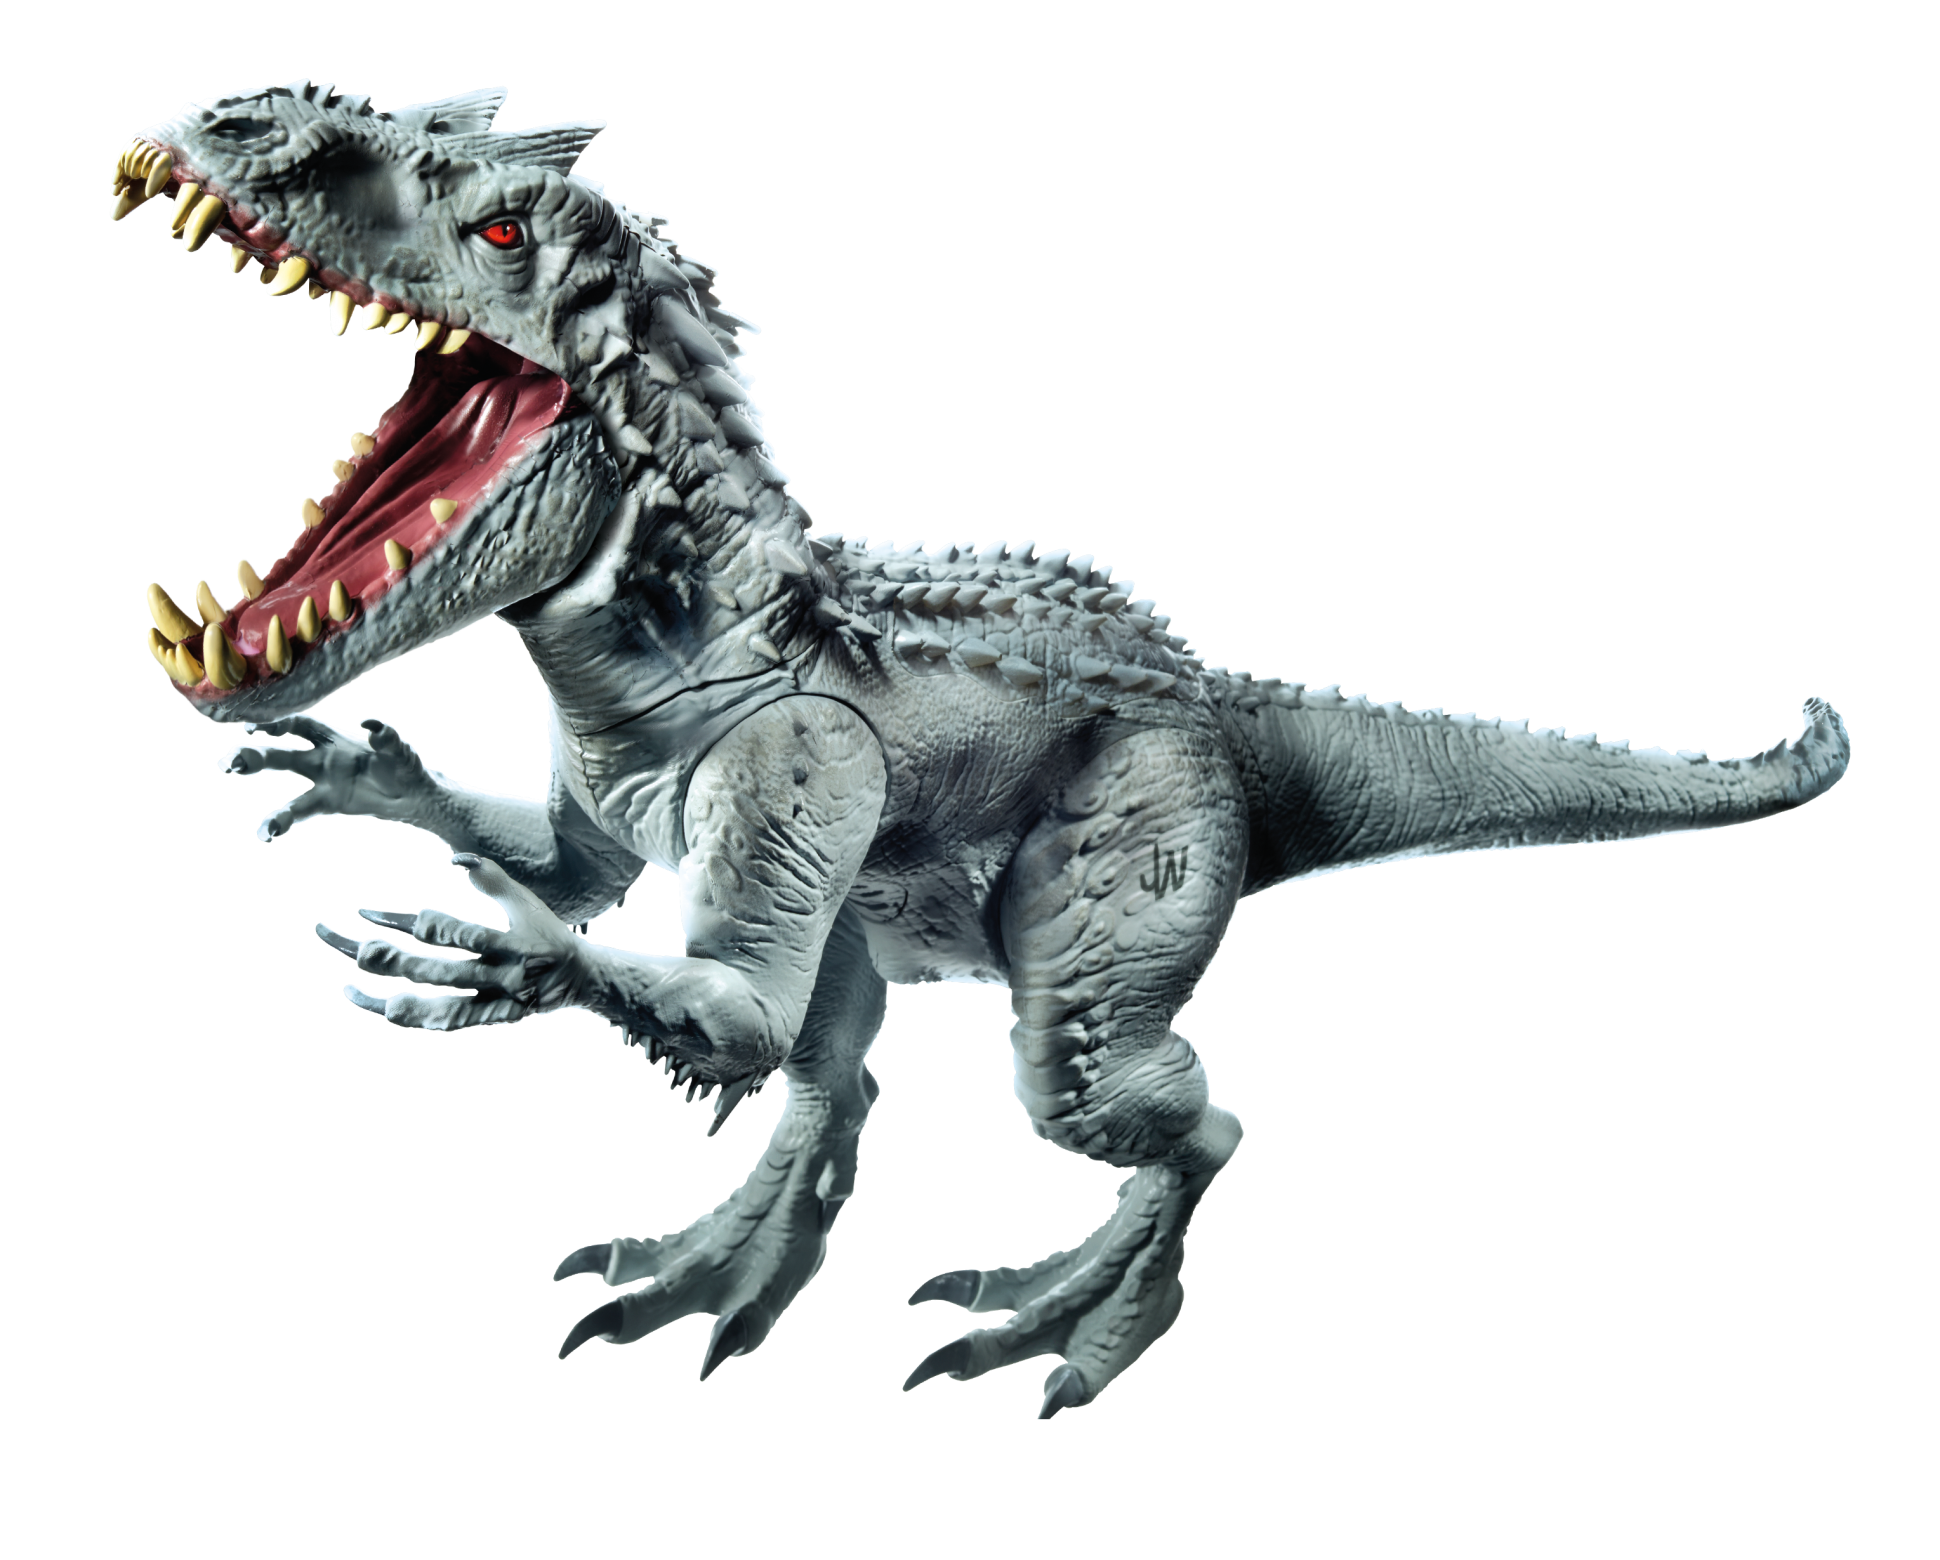 Download jurassic world hd hq png image freepngimg download png image jurassic world hd 516 gumiabroncs Images